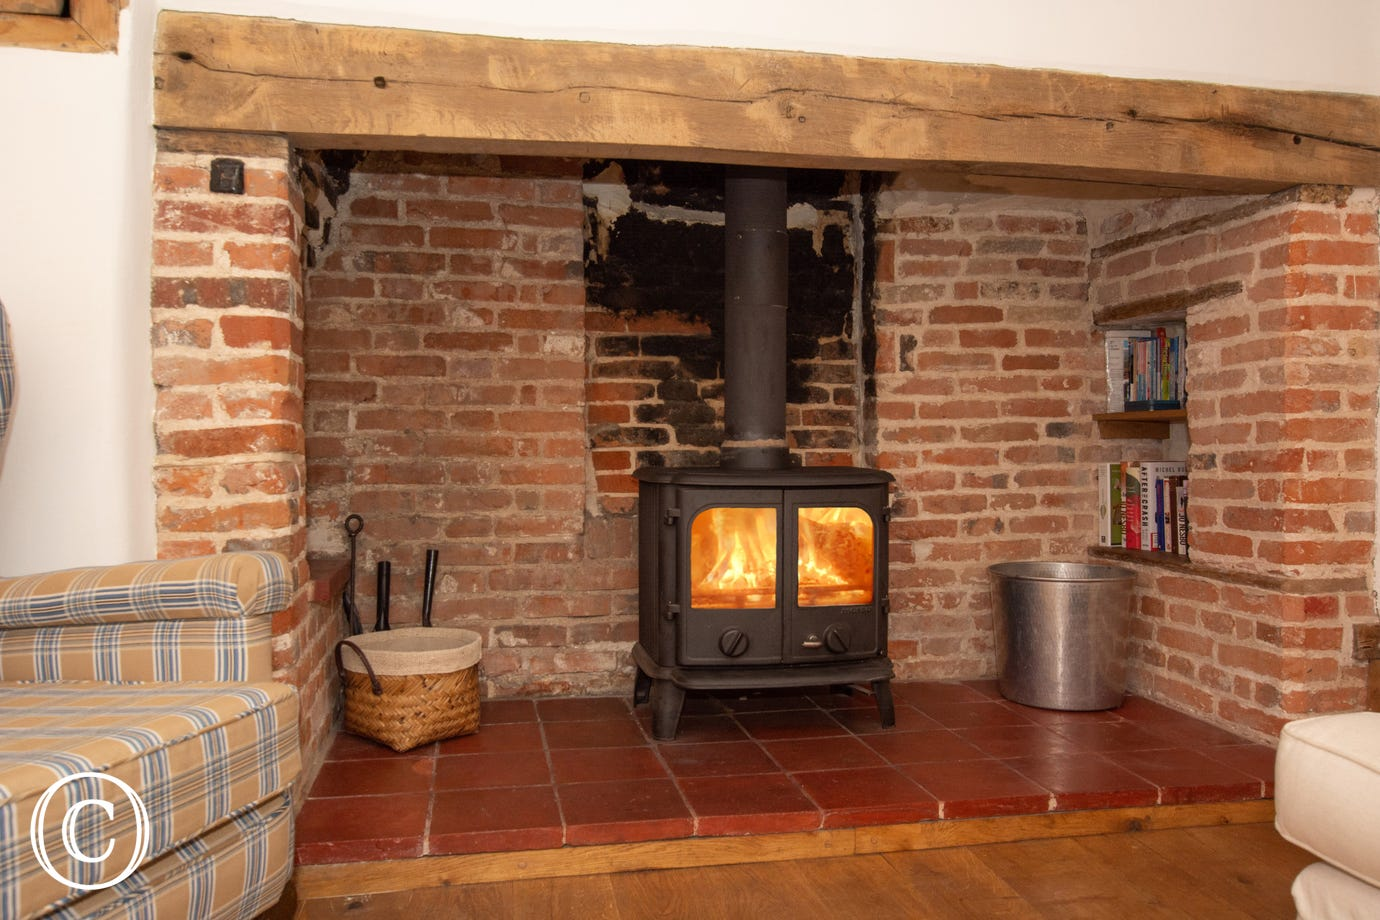 Inglenook fireplace with woodburner